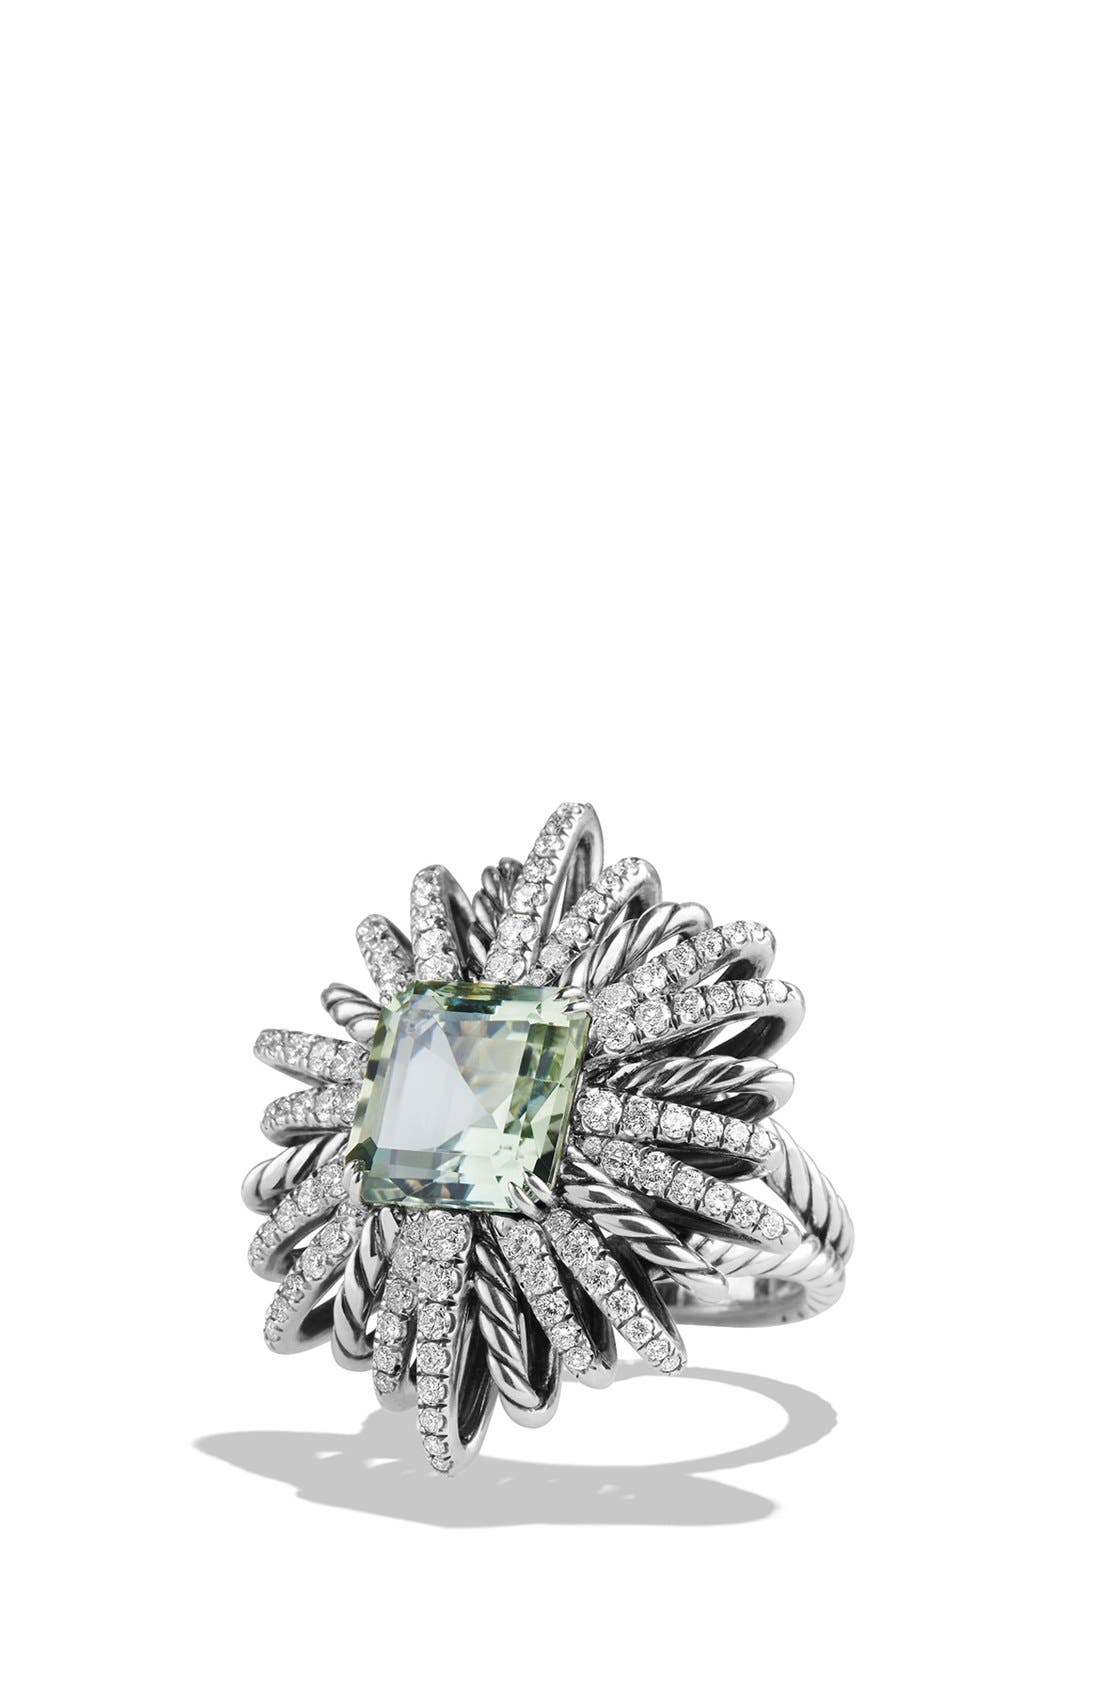 'Starburst' Ring with Semiprecious Stone and Diamonds,                             Main thumbnail 1, color,                             PRASIOLITE